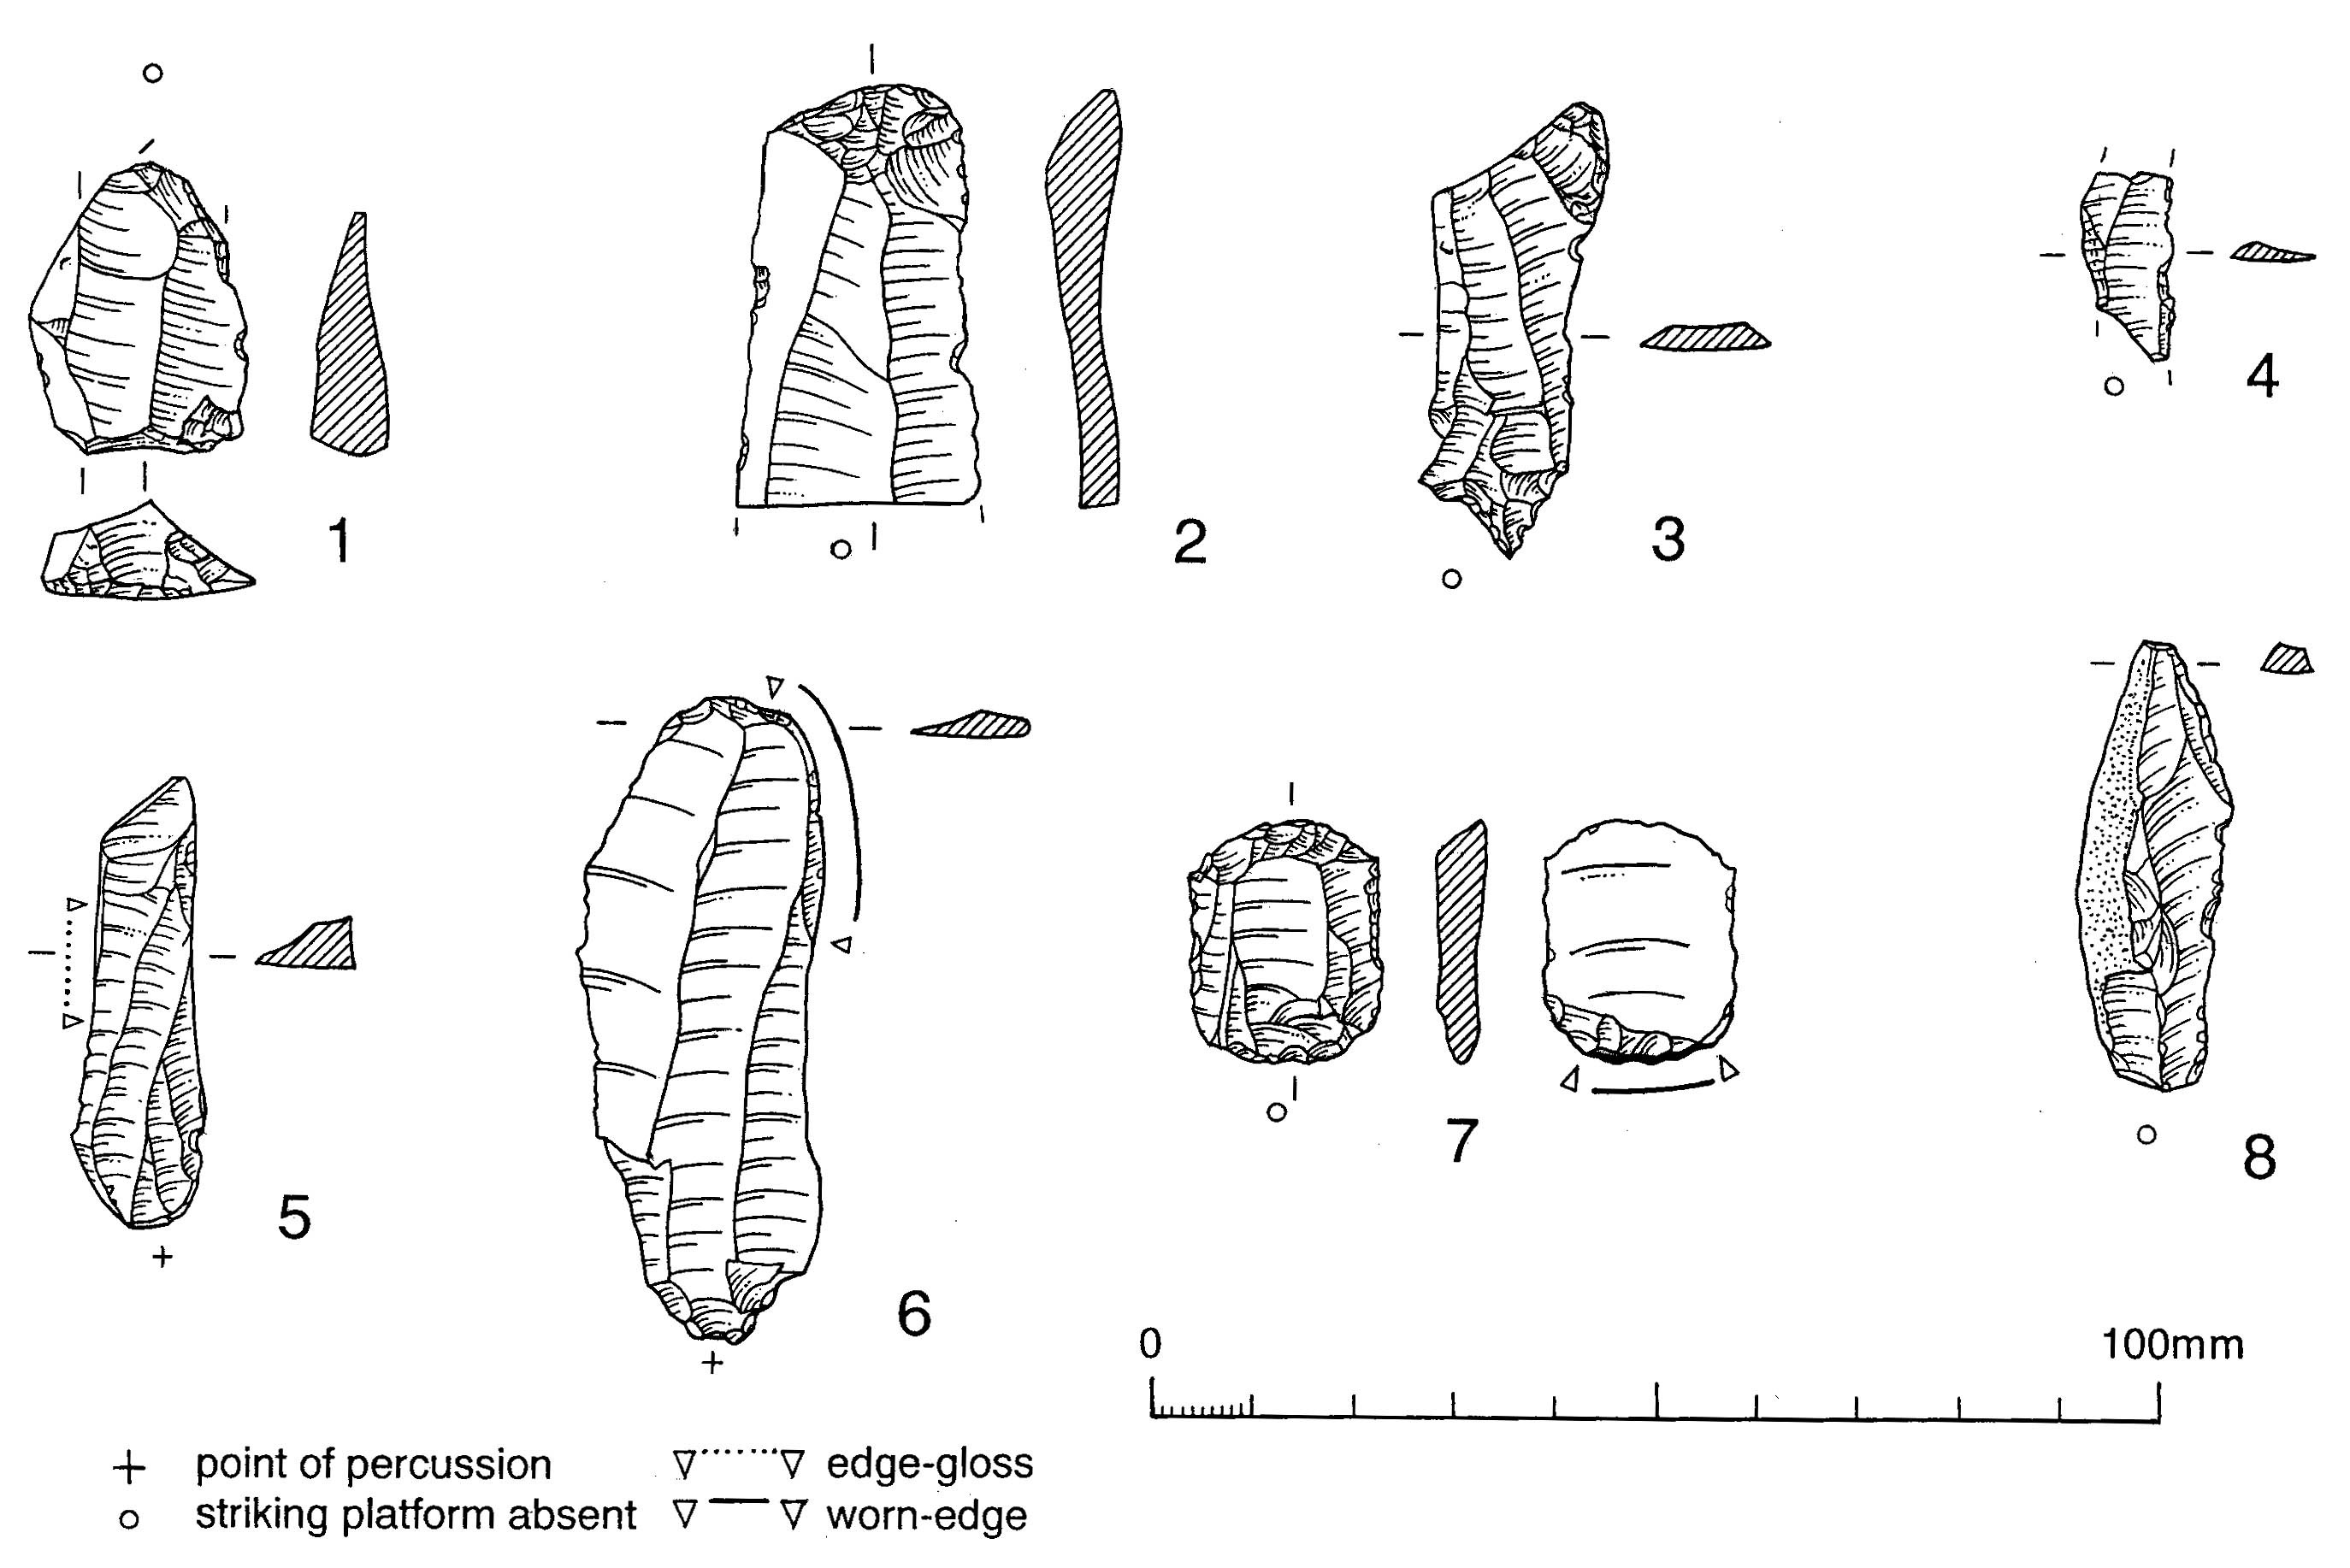 Drawings of eight worked flints,  between 20 and 60 mm long, showing features and wear.